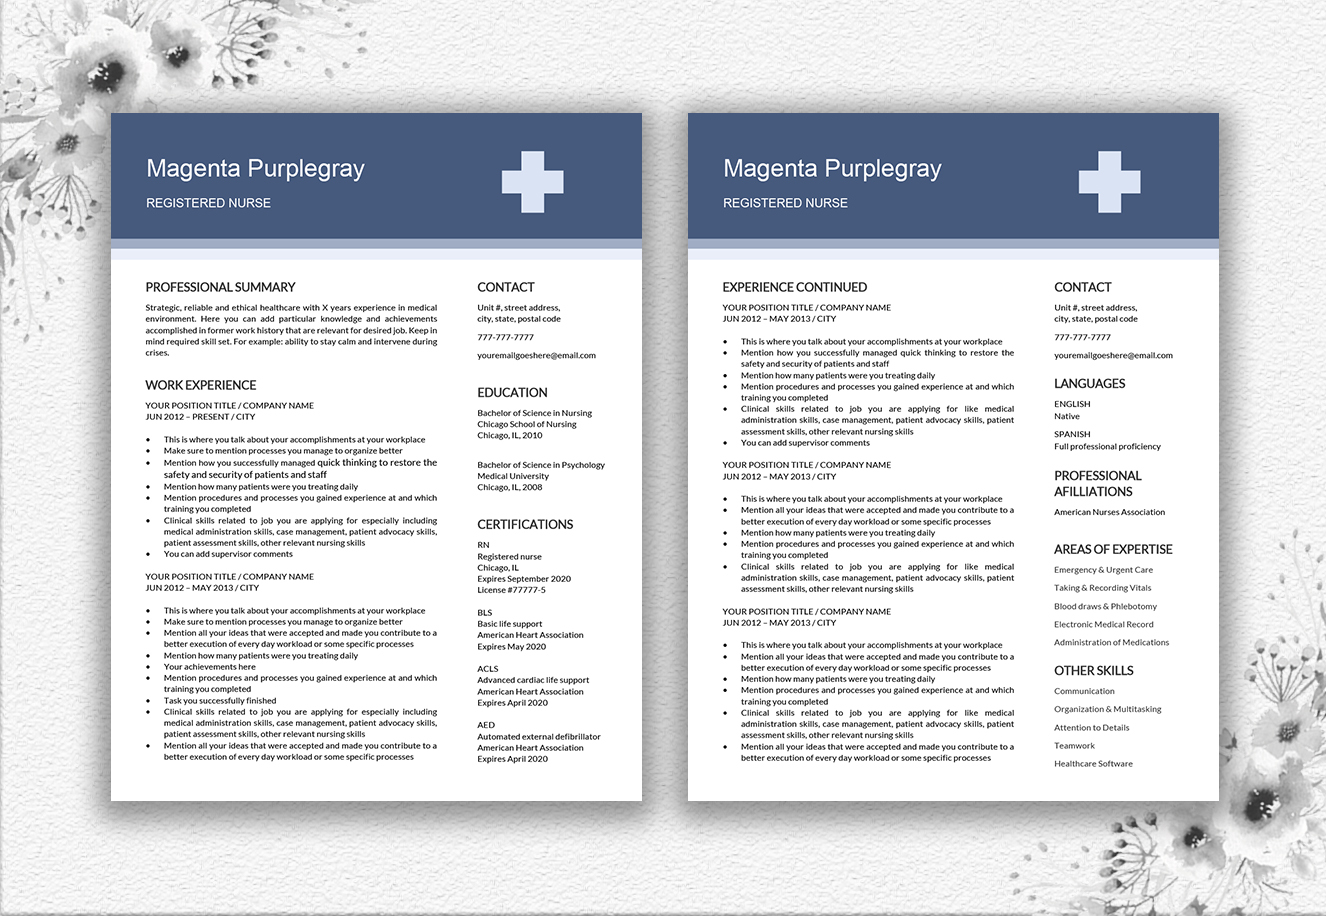 Medical Resume Template example image 5